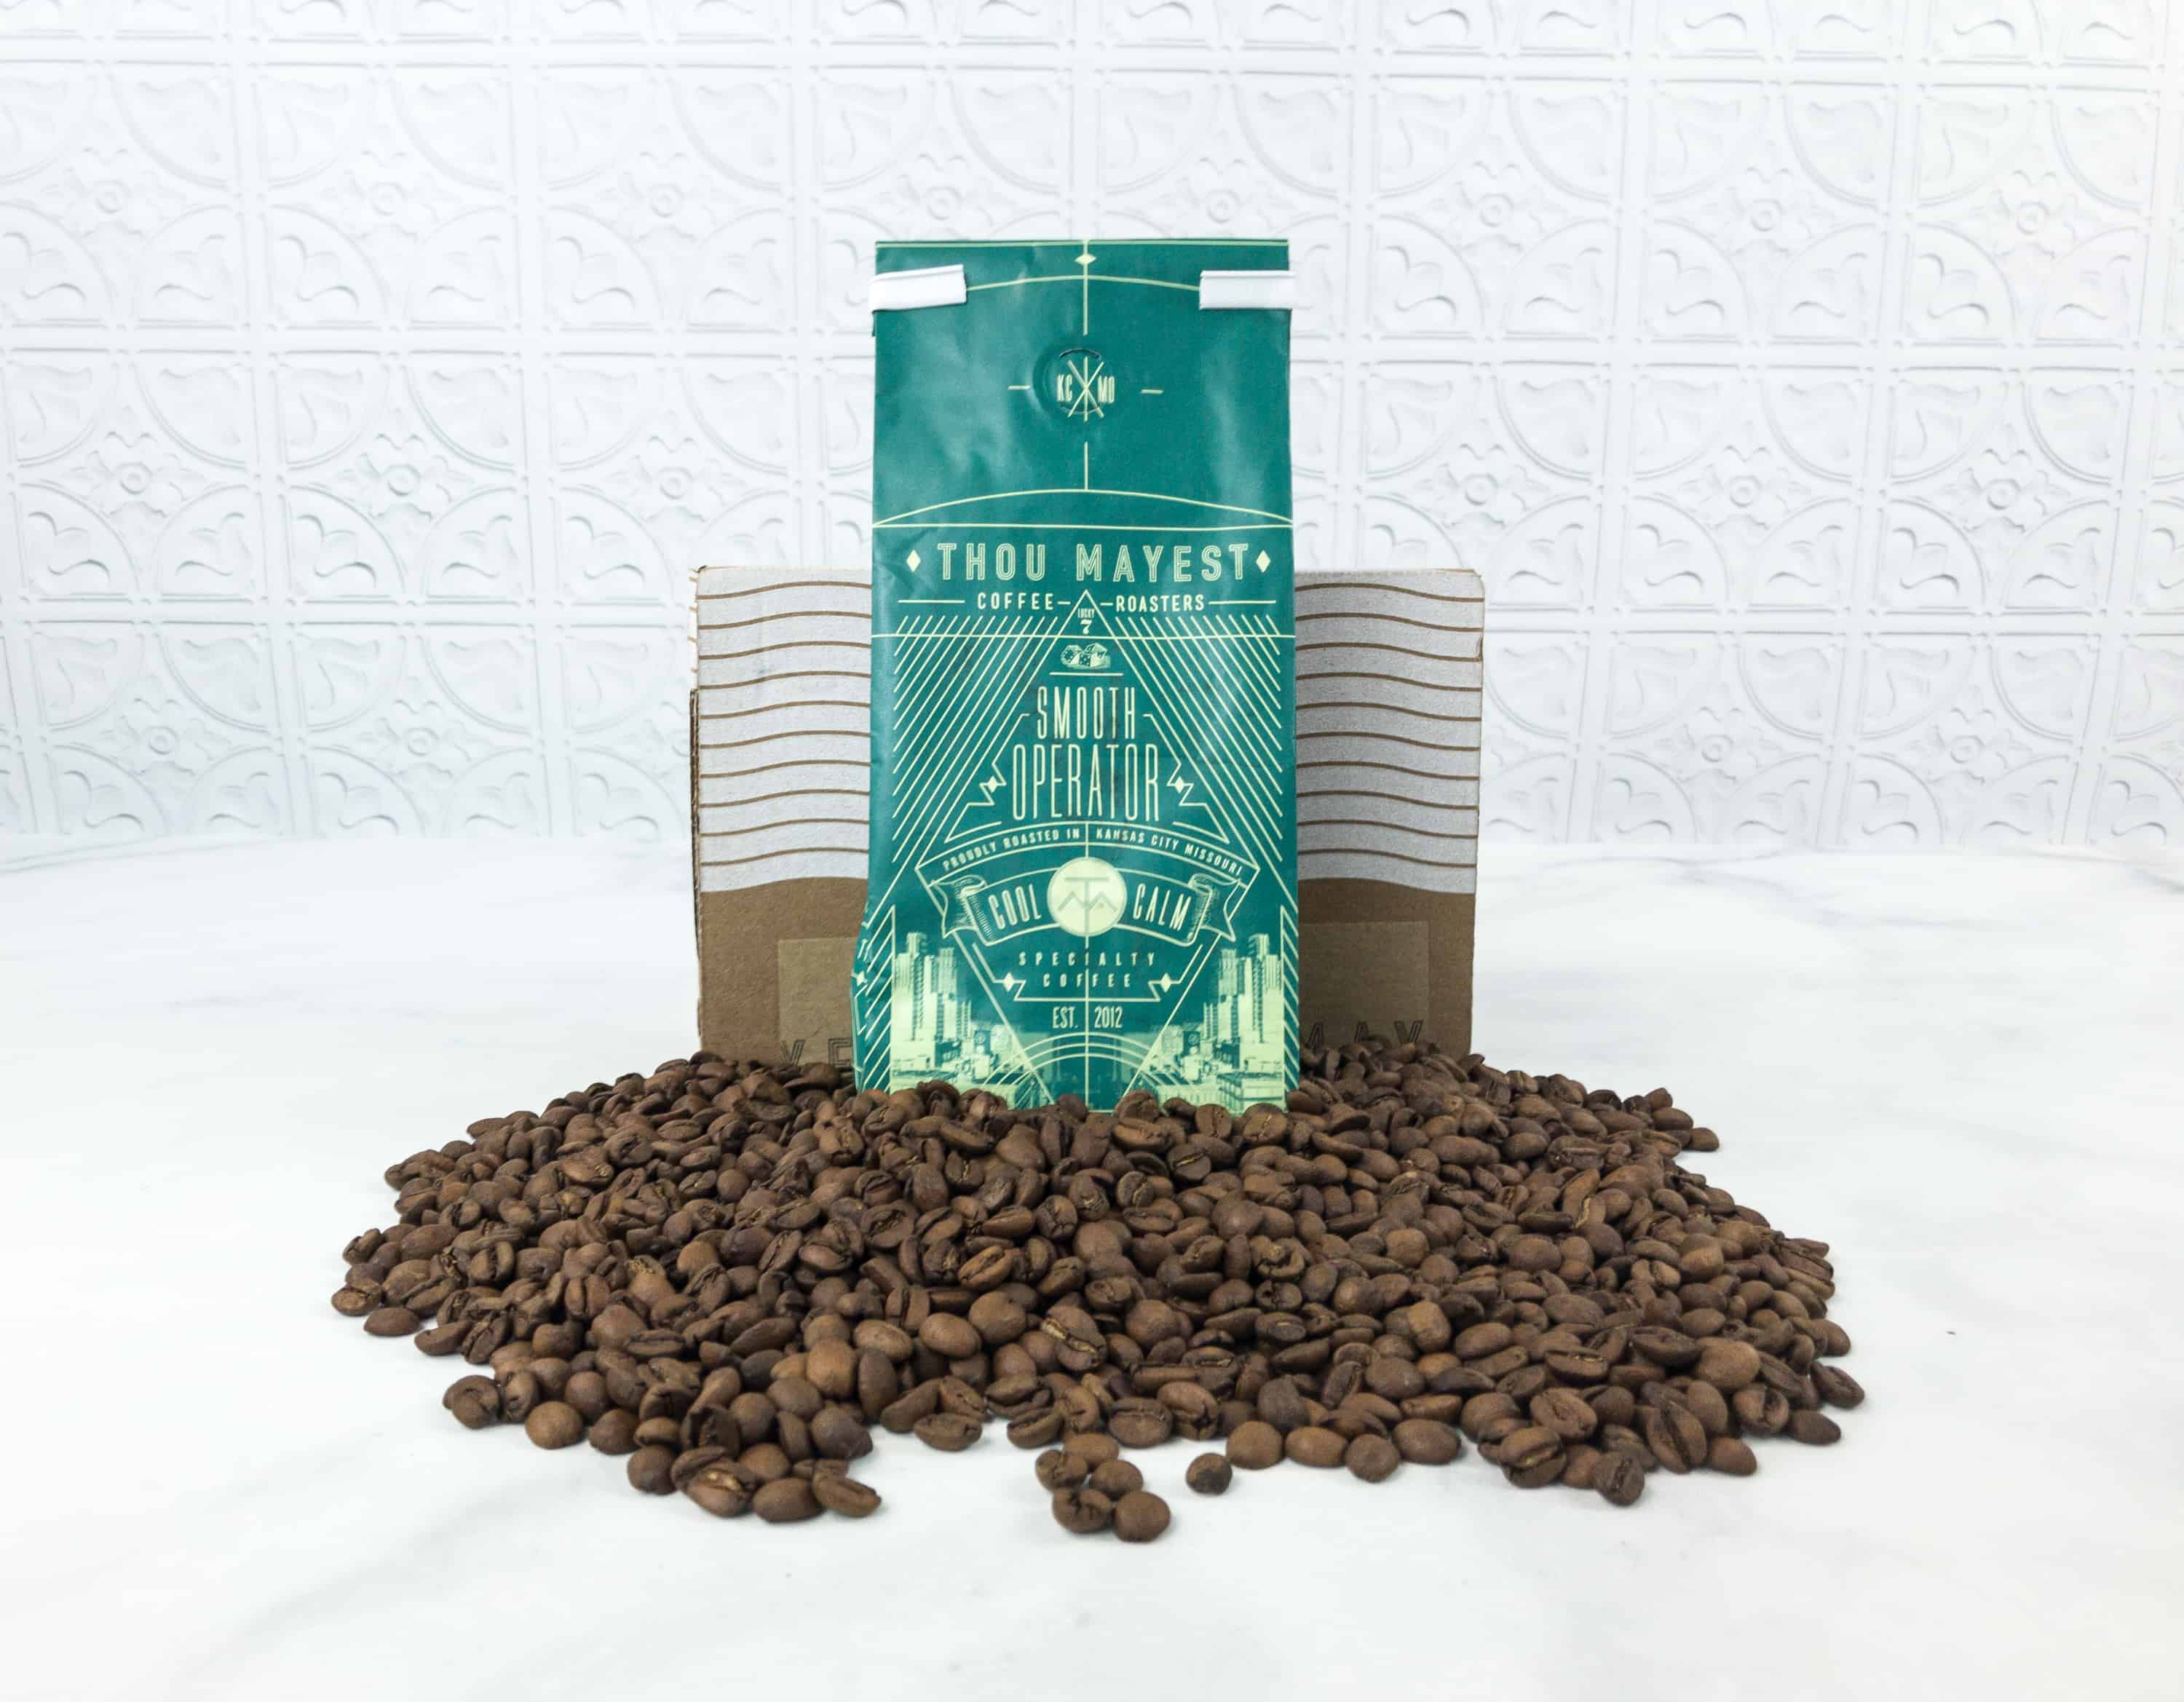 Smooth Operator Brazil Cocarive Cooperative 20 This Natural Pulped Coffee Beans From Thou Mayest Was Grown